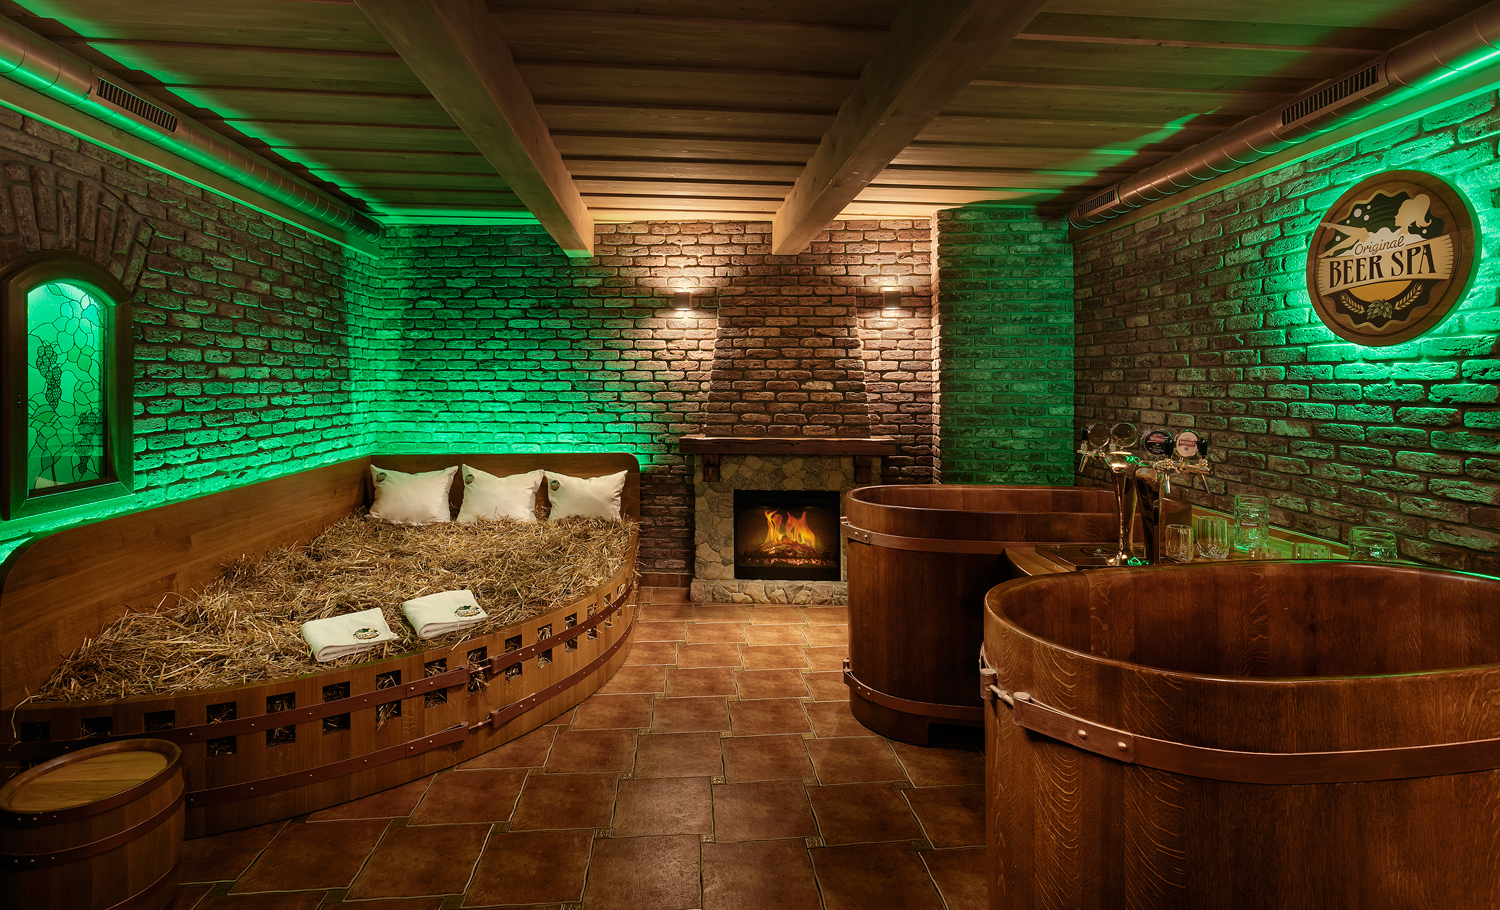 A spa in Bohemia? Yes, and preferably a beer spa!